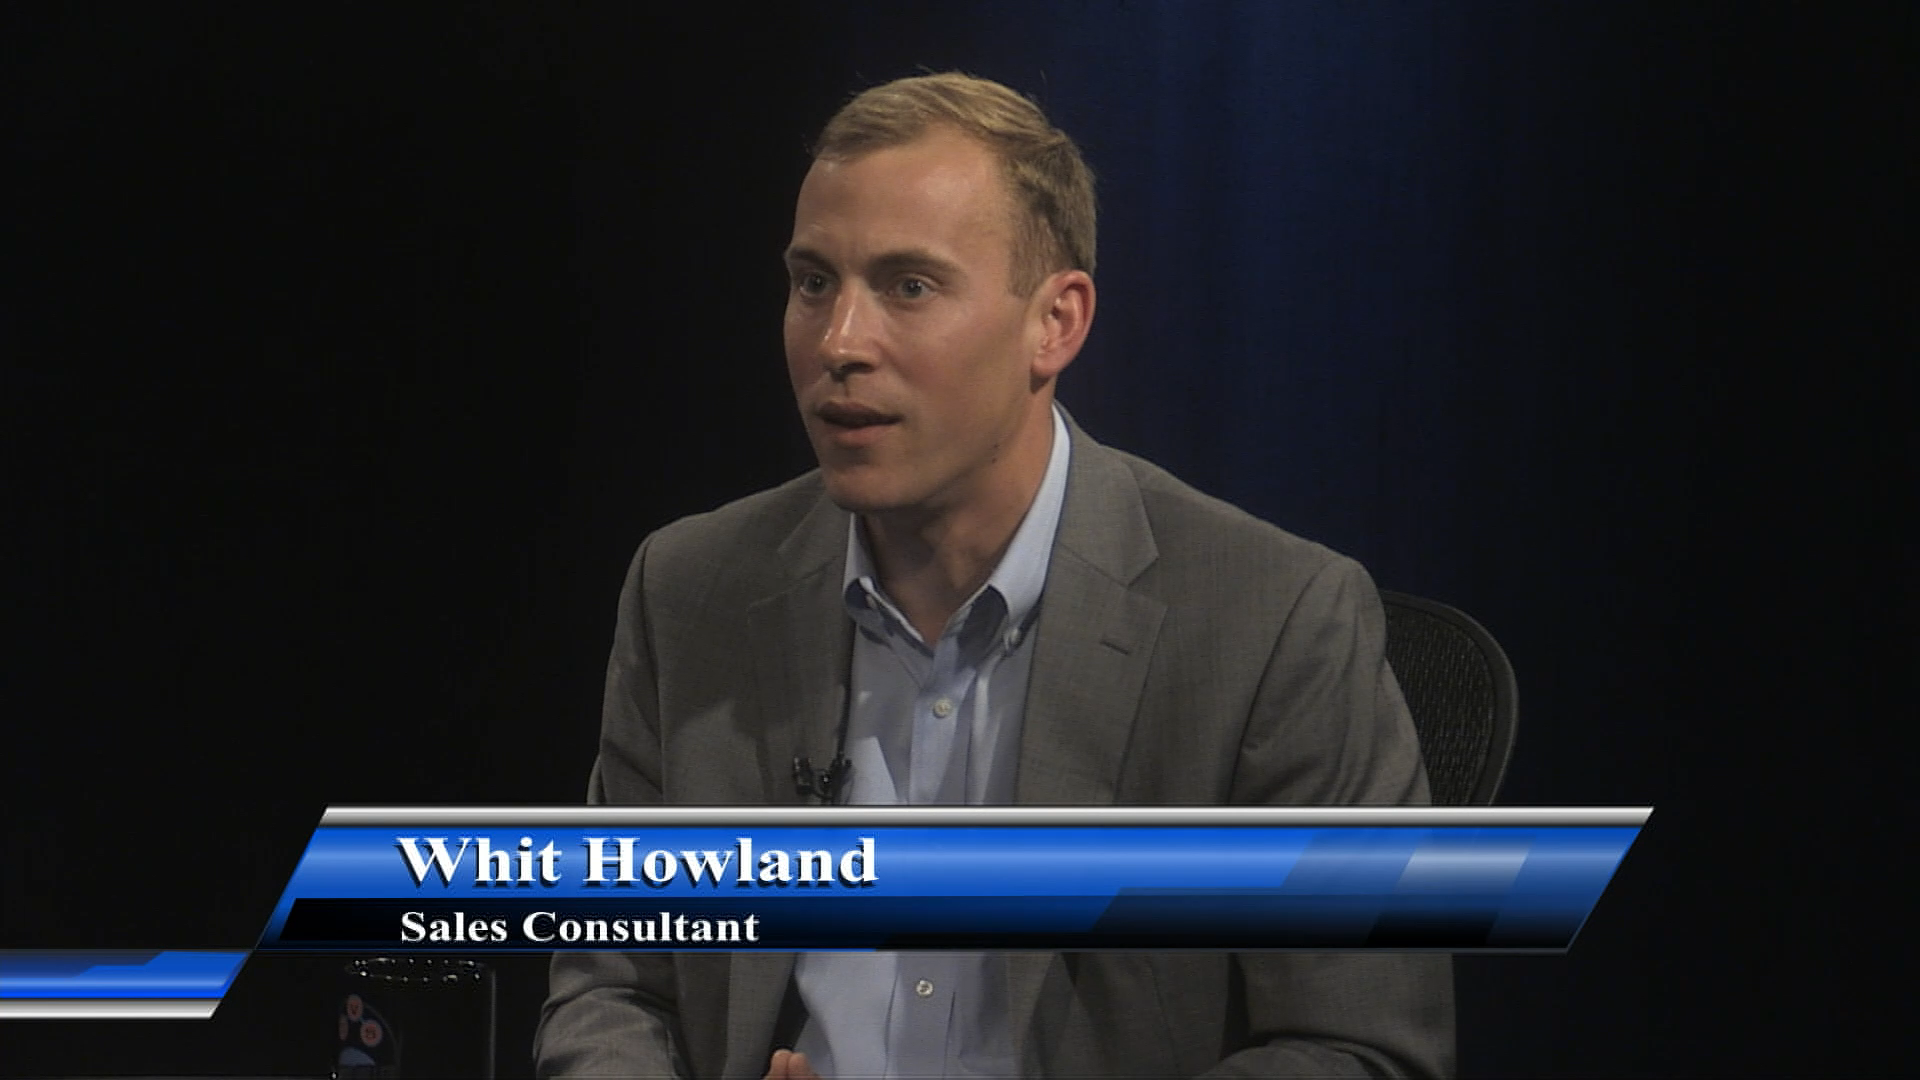 Whit Howland Shares All the Necessary Skills a Startup Should Have in Sales